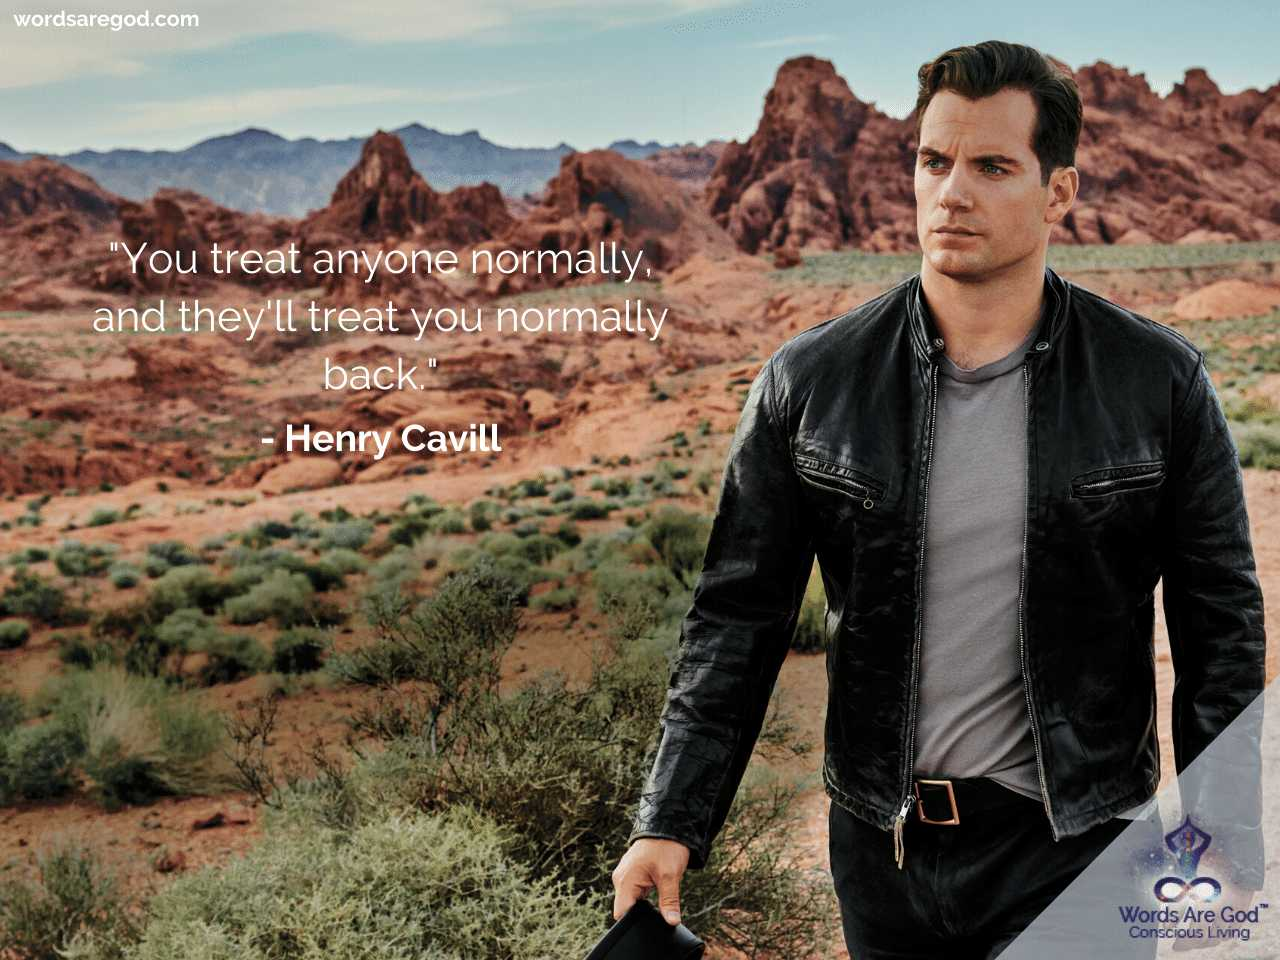 Henry Cavill Motivational Quotes by Henry Cavill